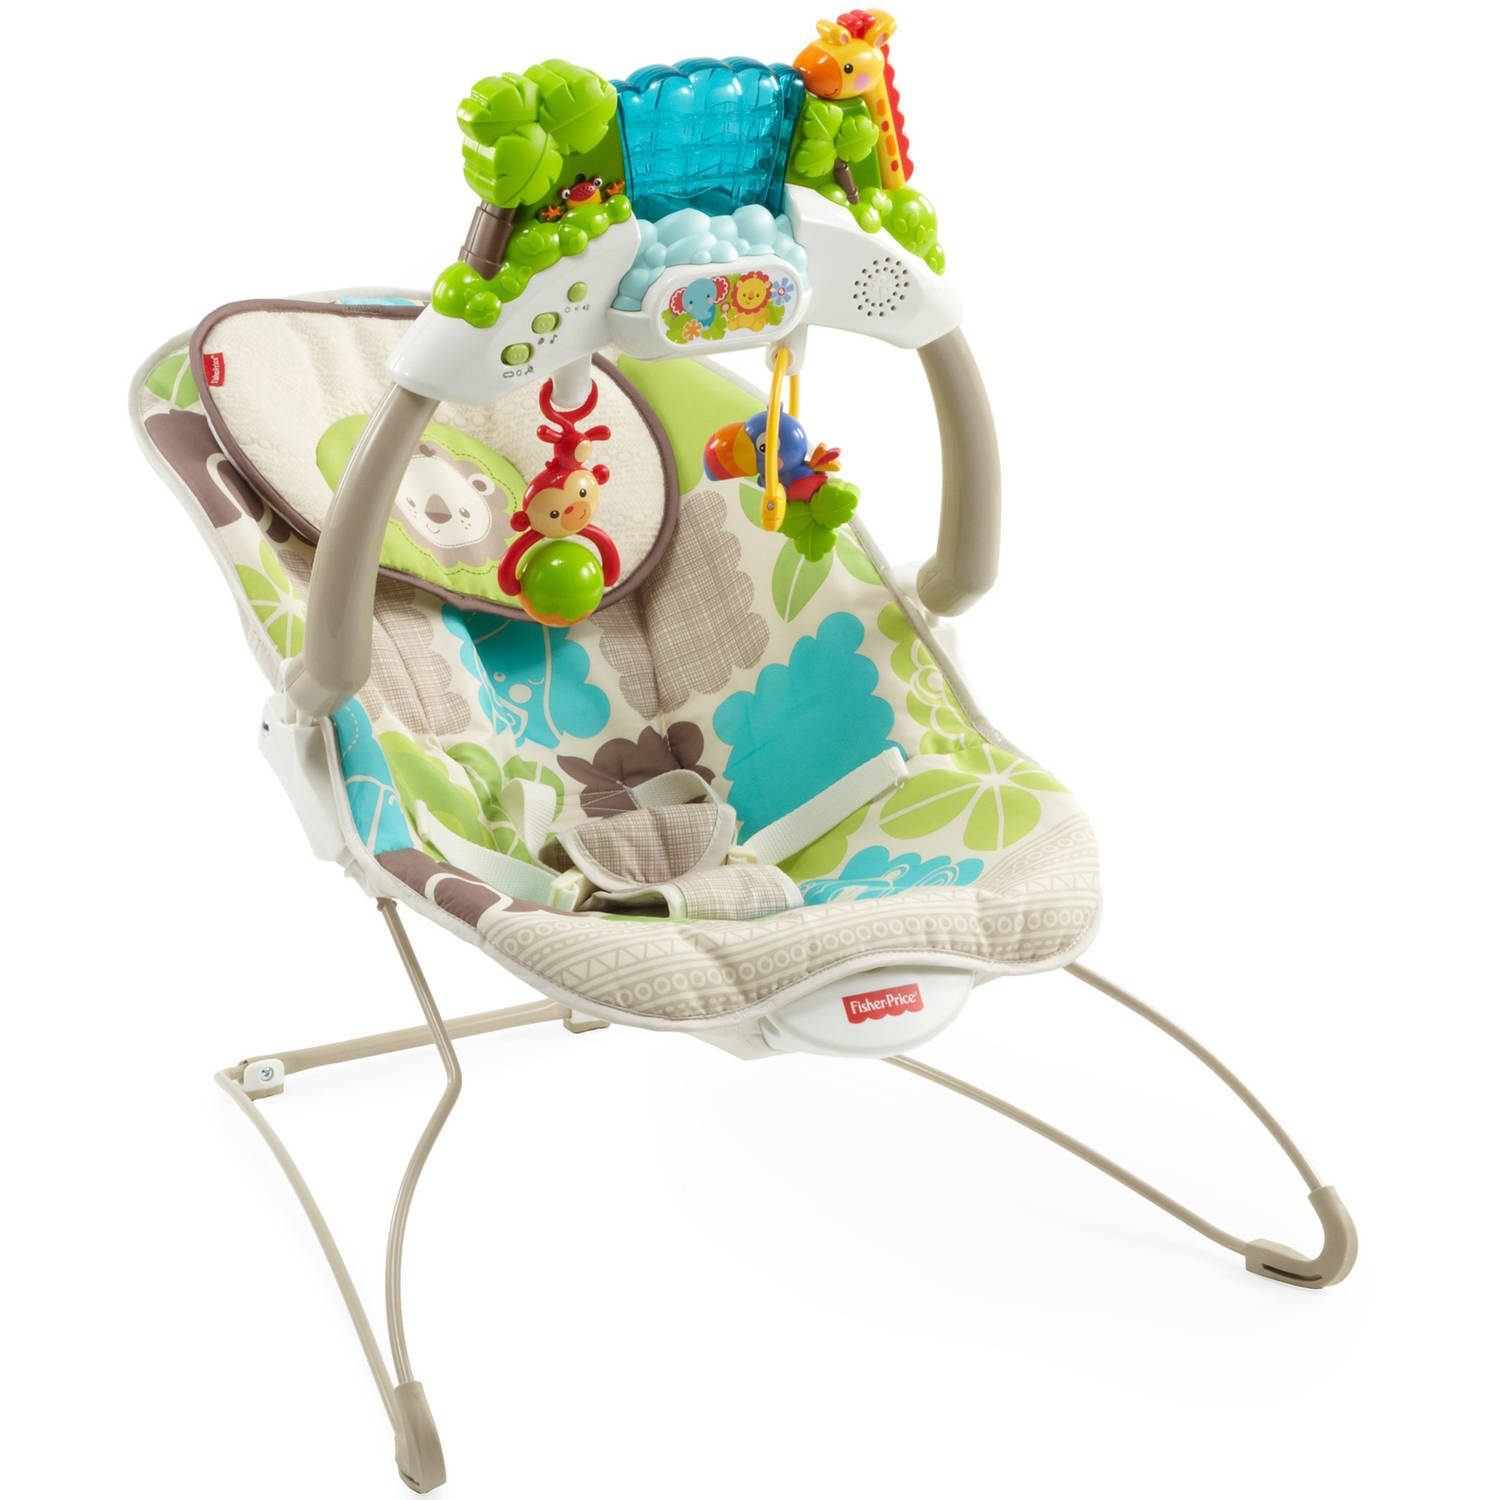 Fisher Price Rain Forrest Bouncer Just $30.52 Down From $59.44!